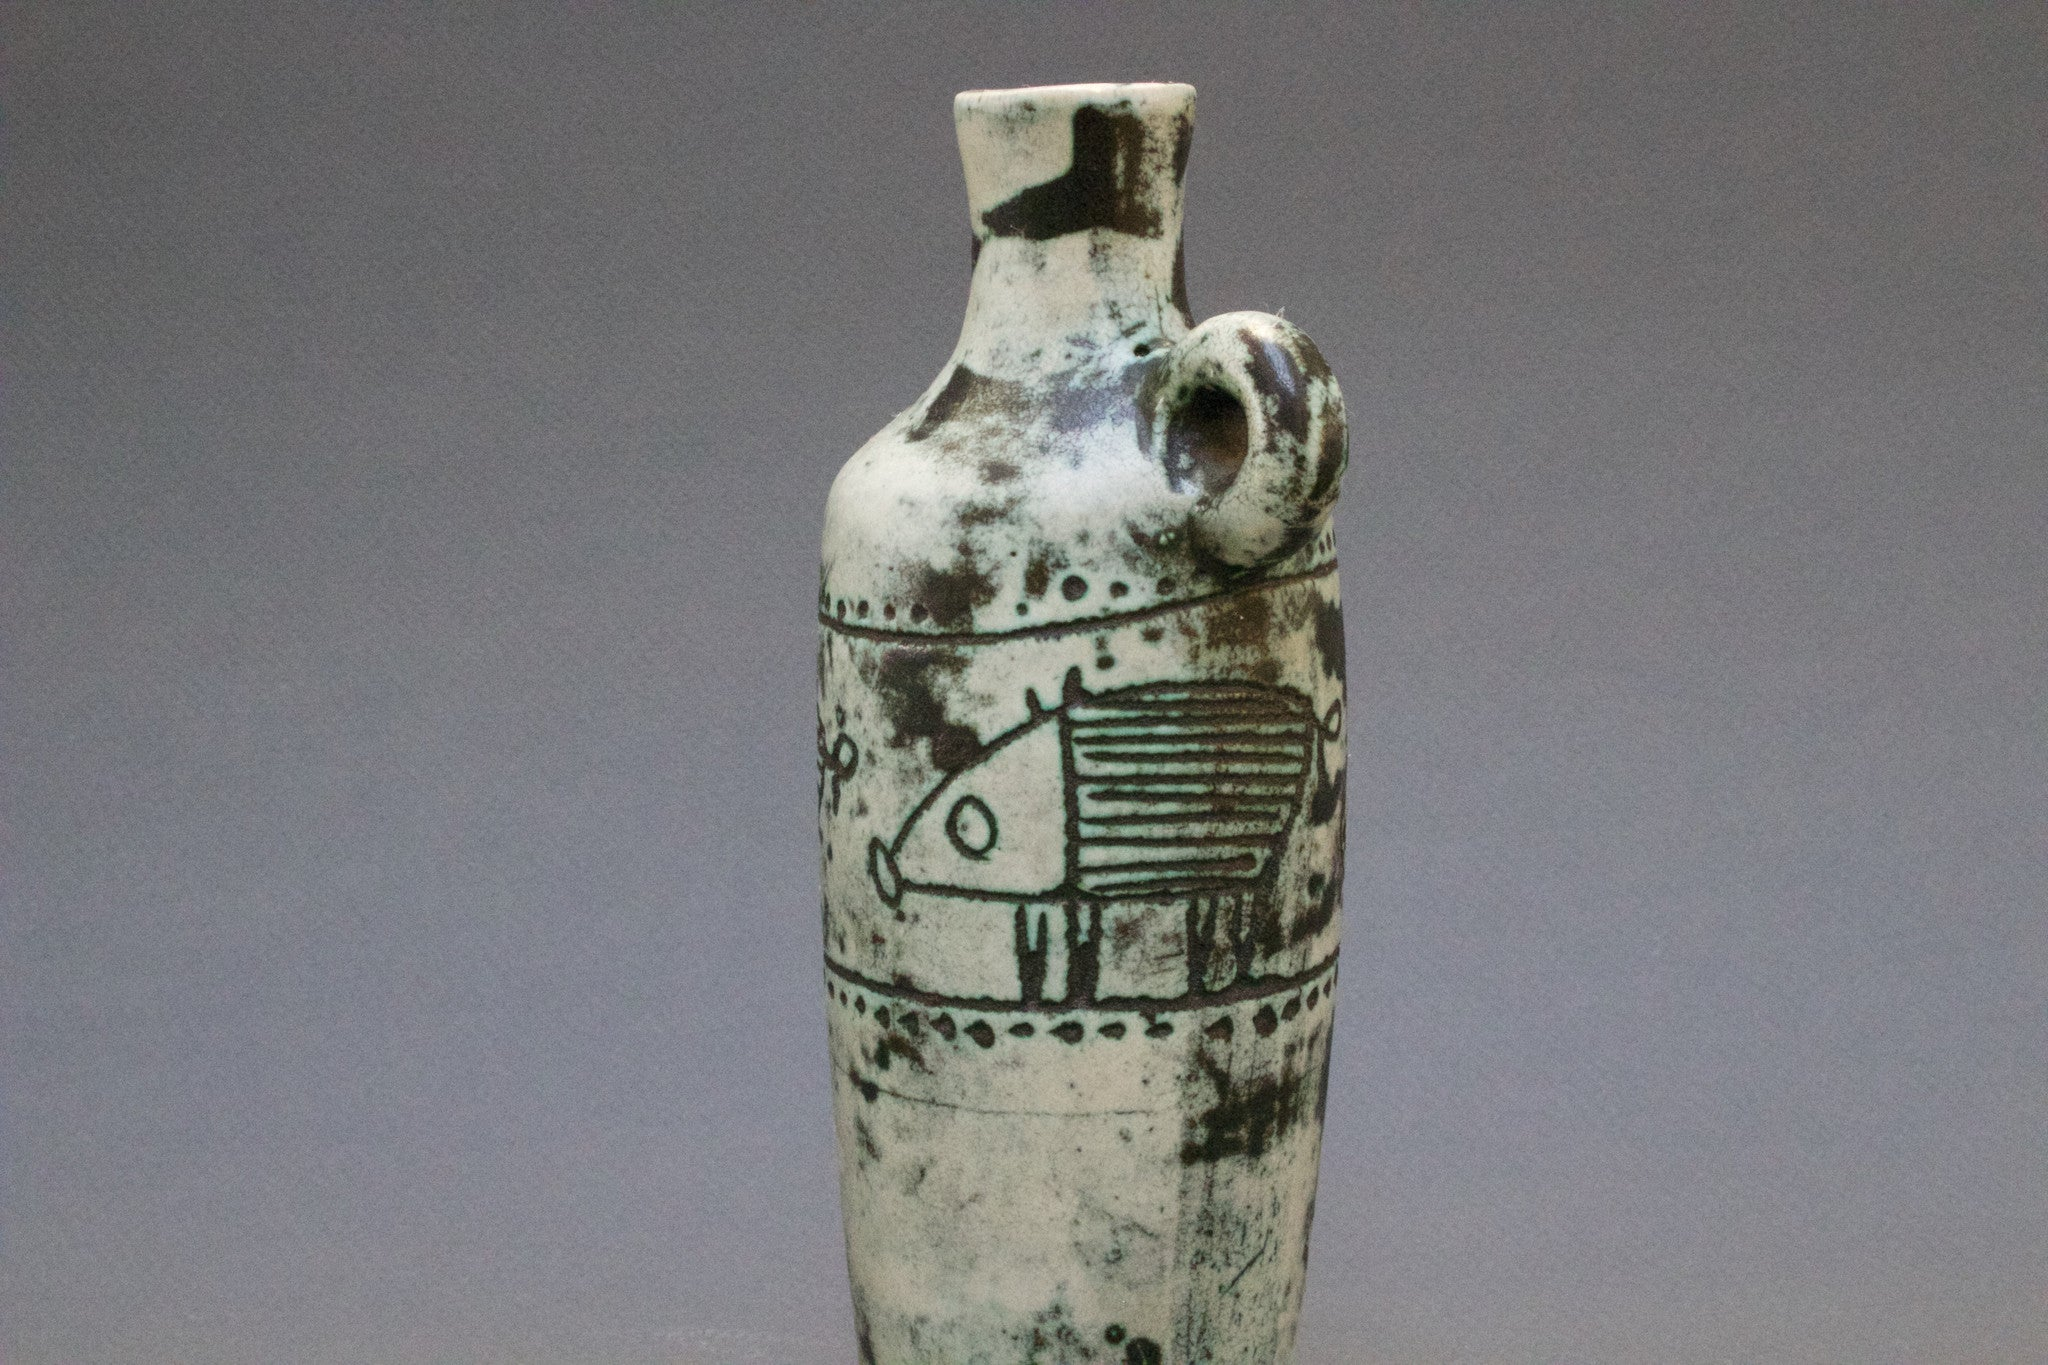 Ceramic Vase by Jacques Blin with Wild Boar Motifs (c. 1950s)